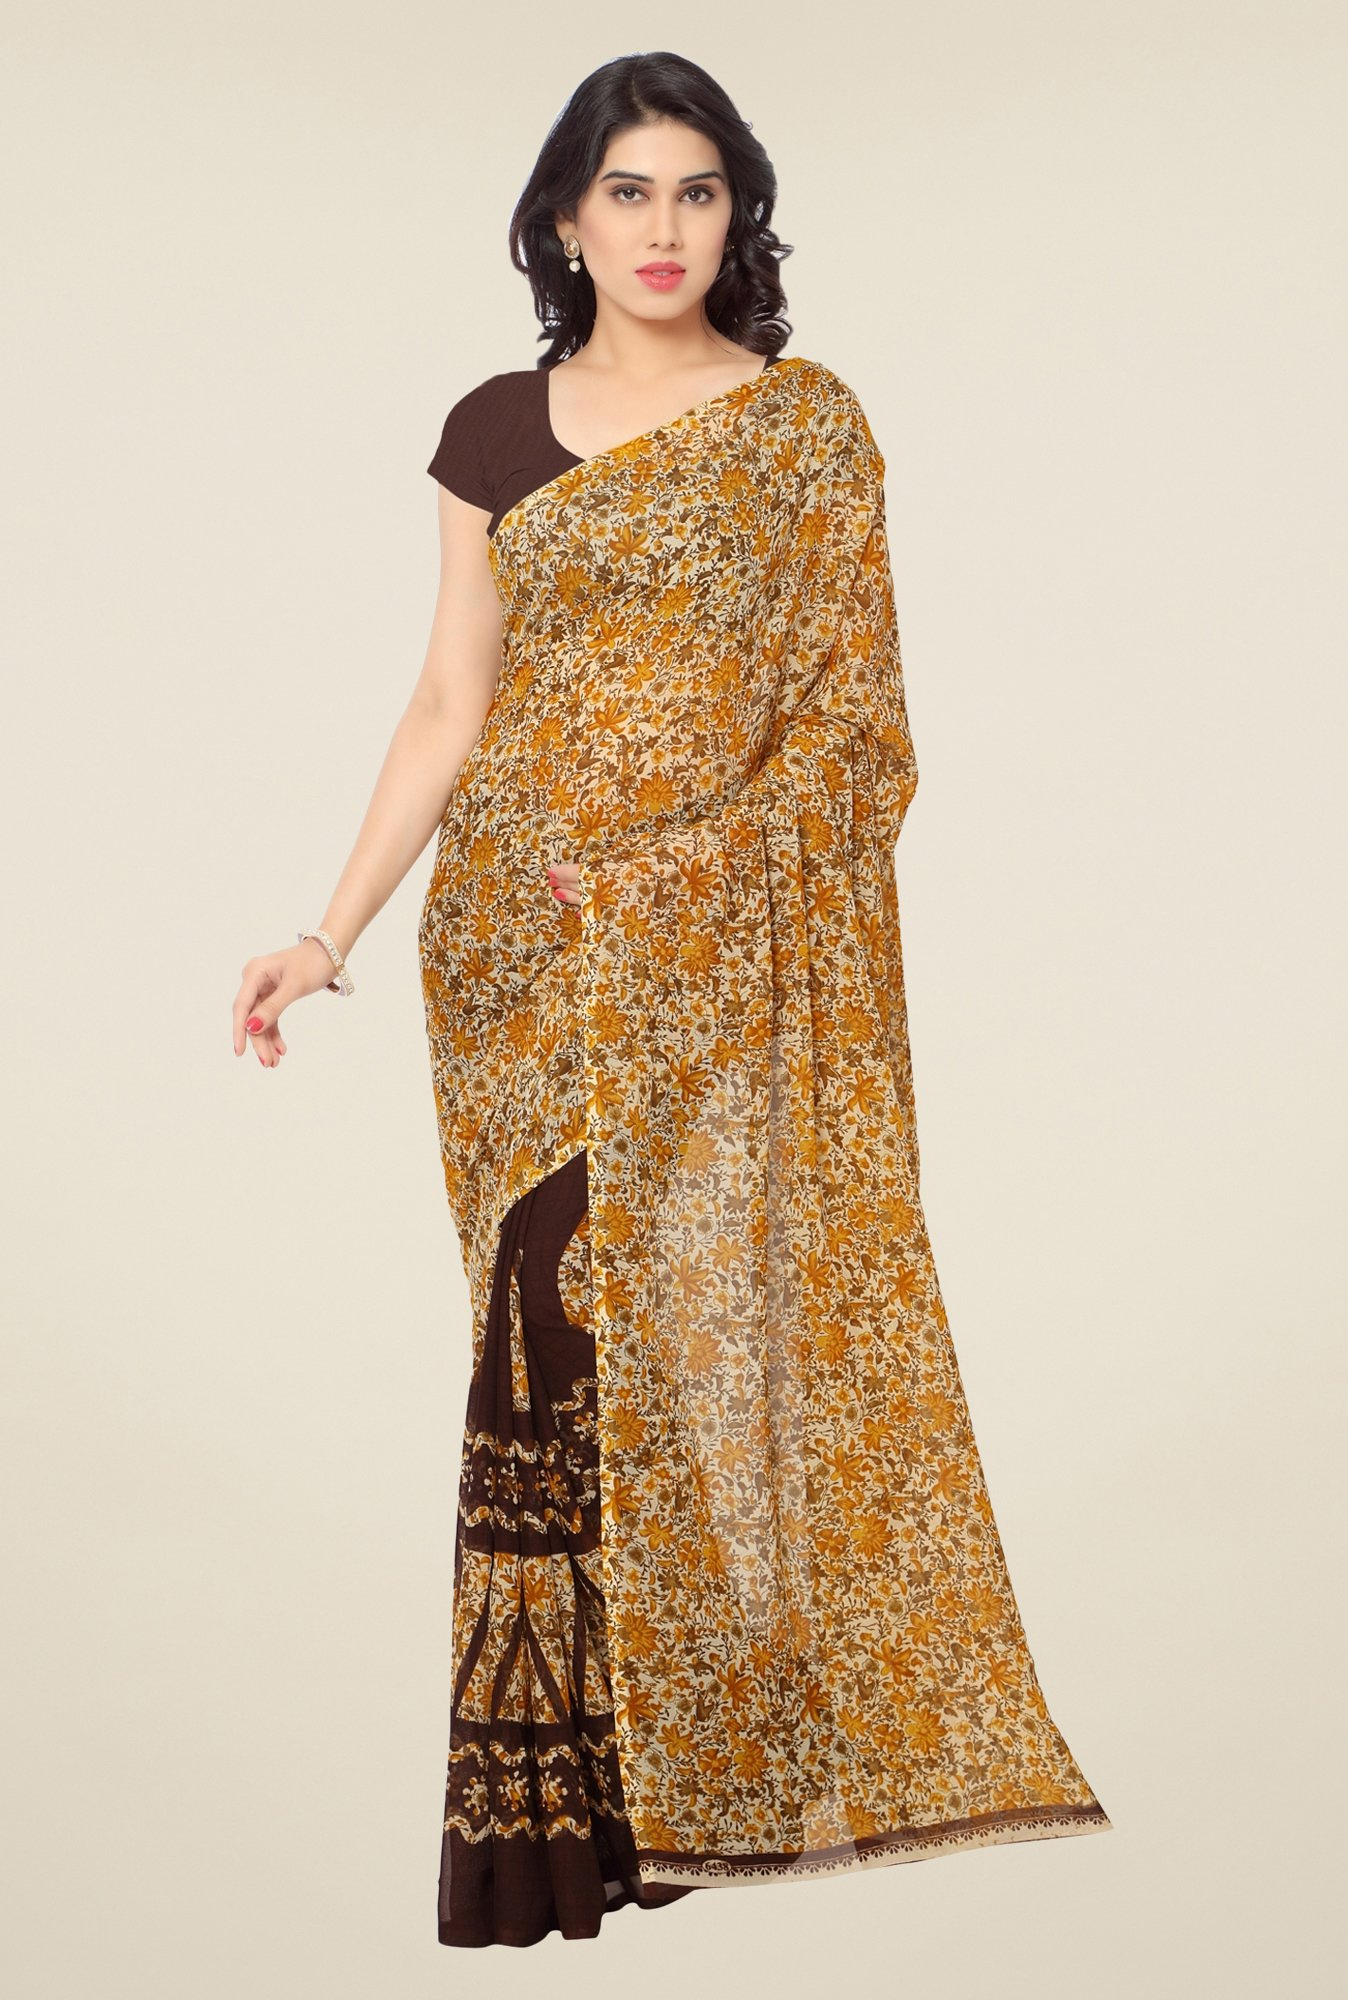 Triveni Brown Floral Faux Georgette Saree